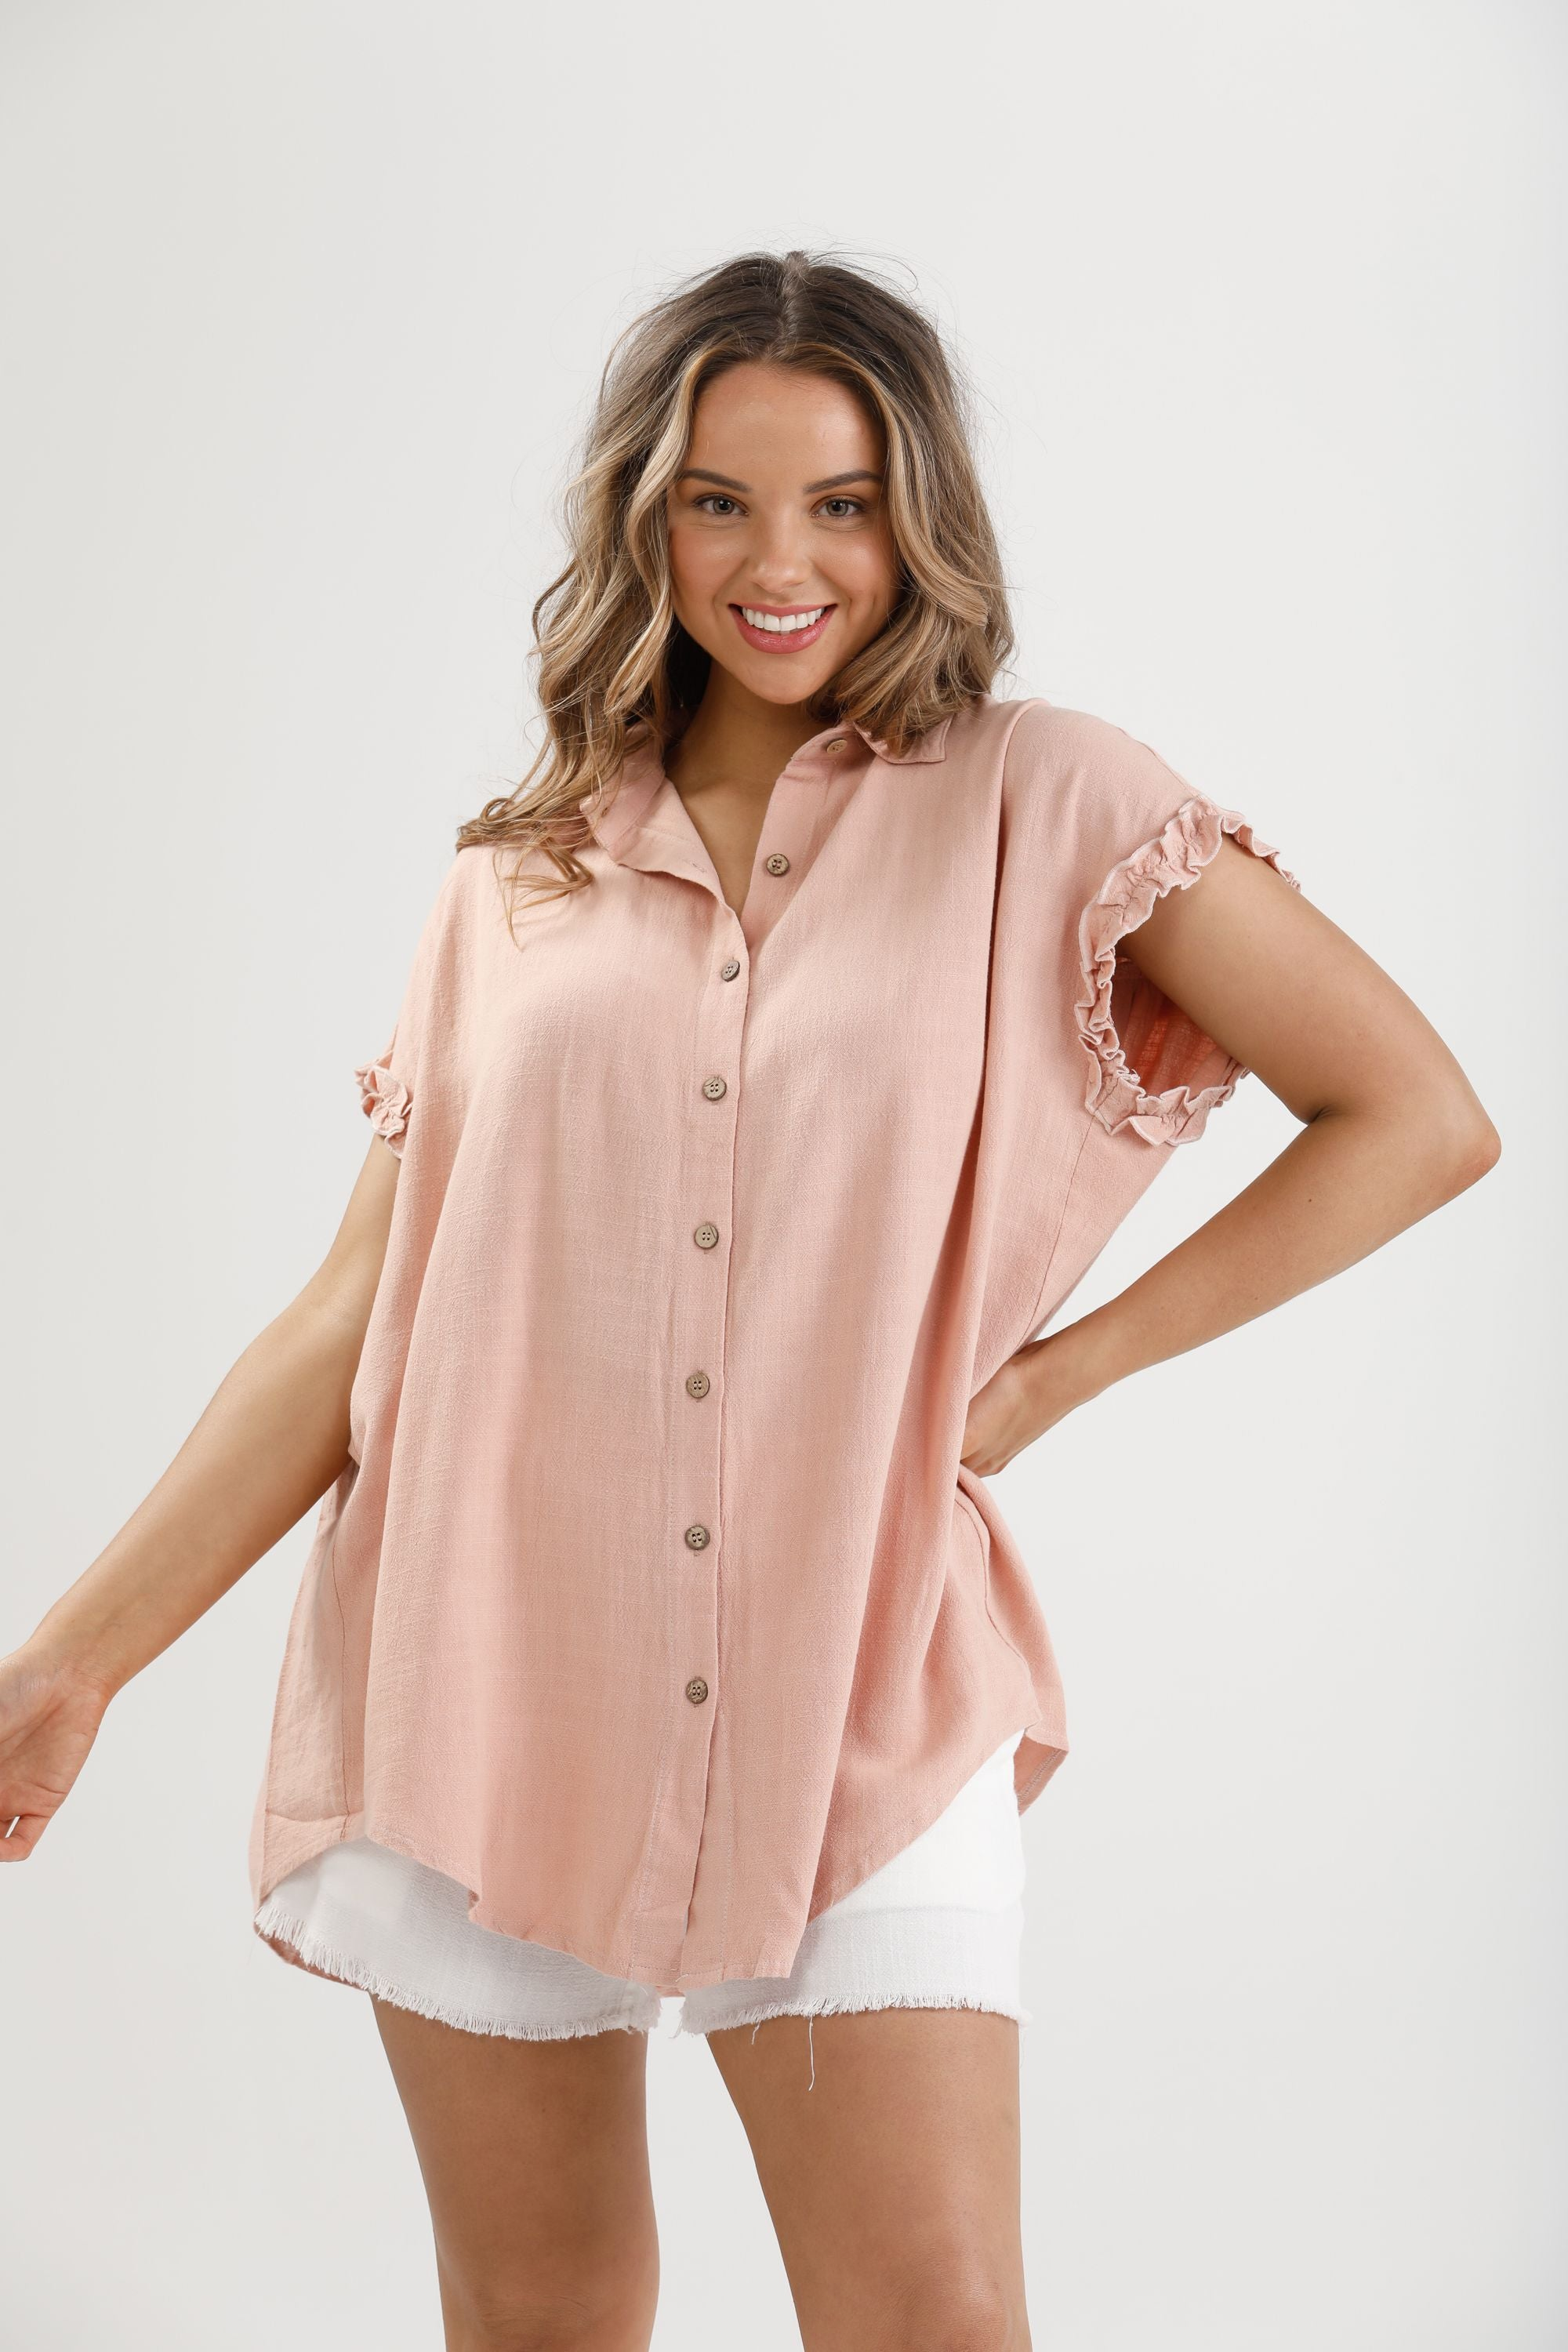 Sunshine Shirt in Spice - Linen Viscose